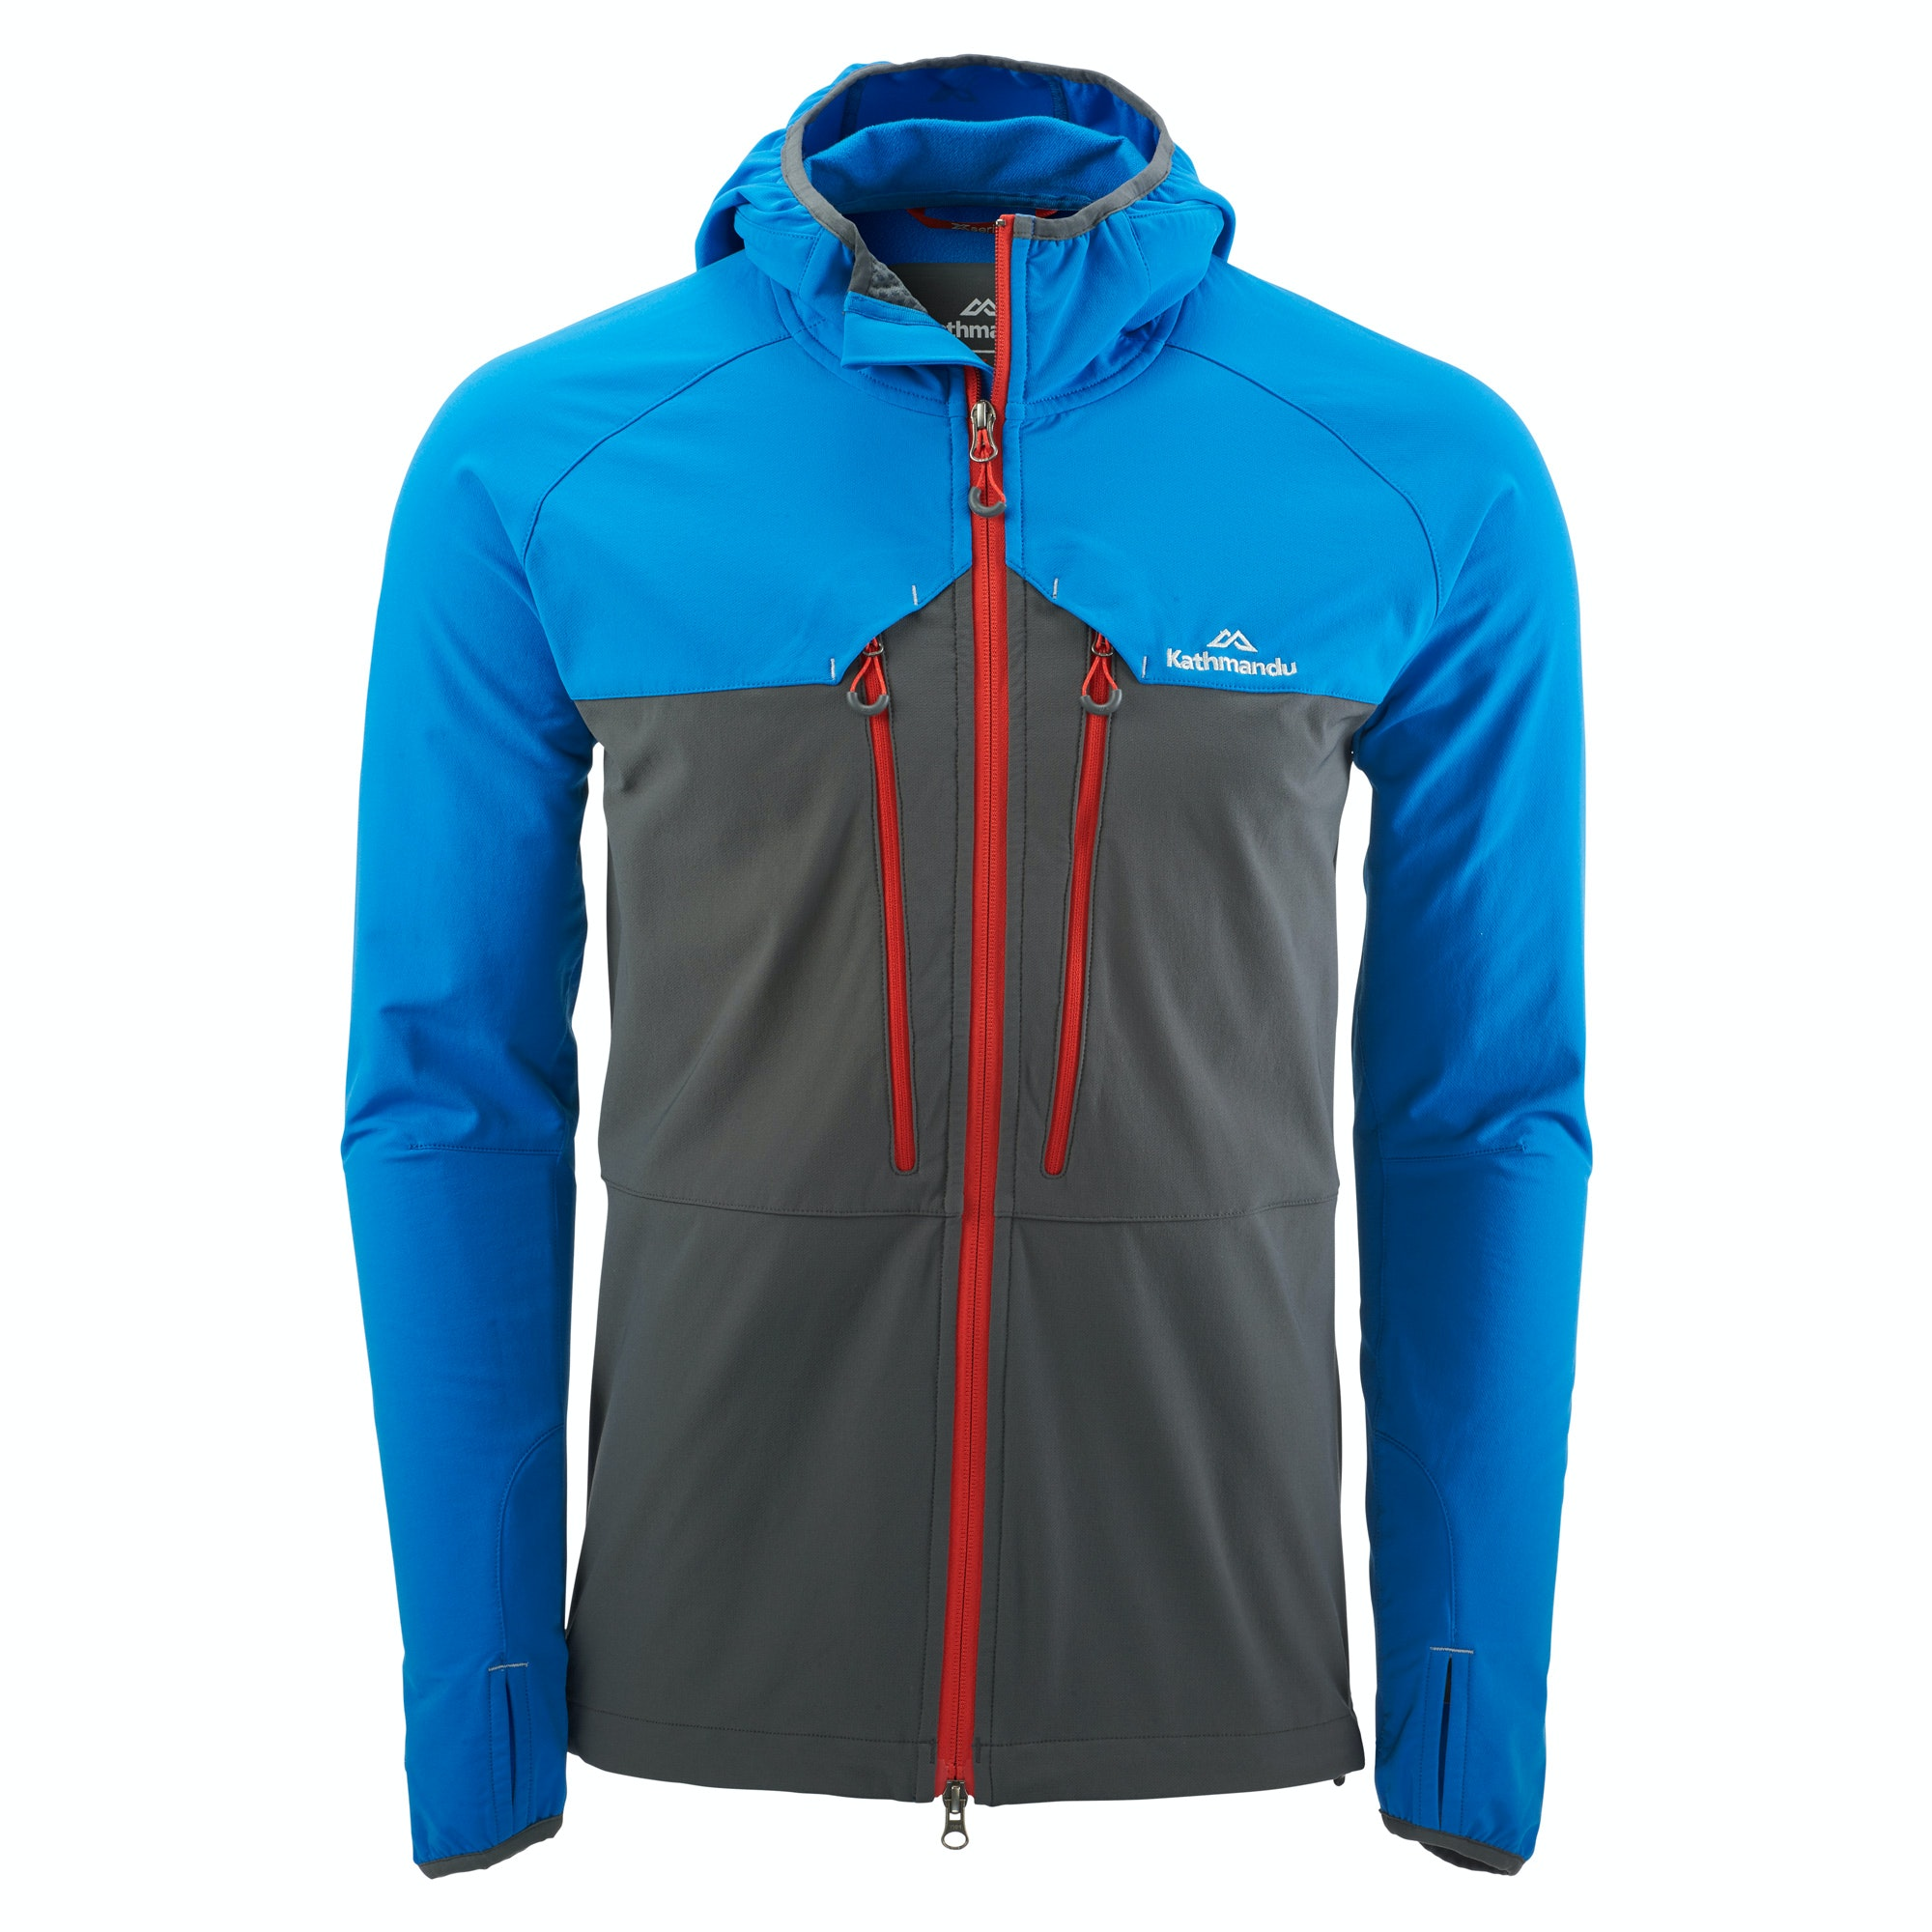 View more of the XT Terrno Men's Softshell Jacket v2